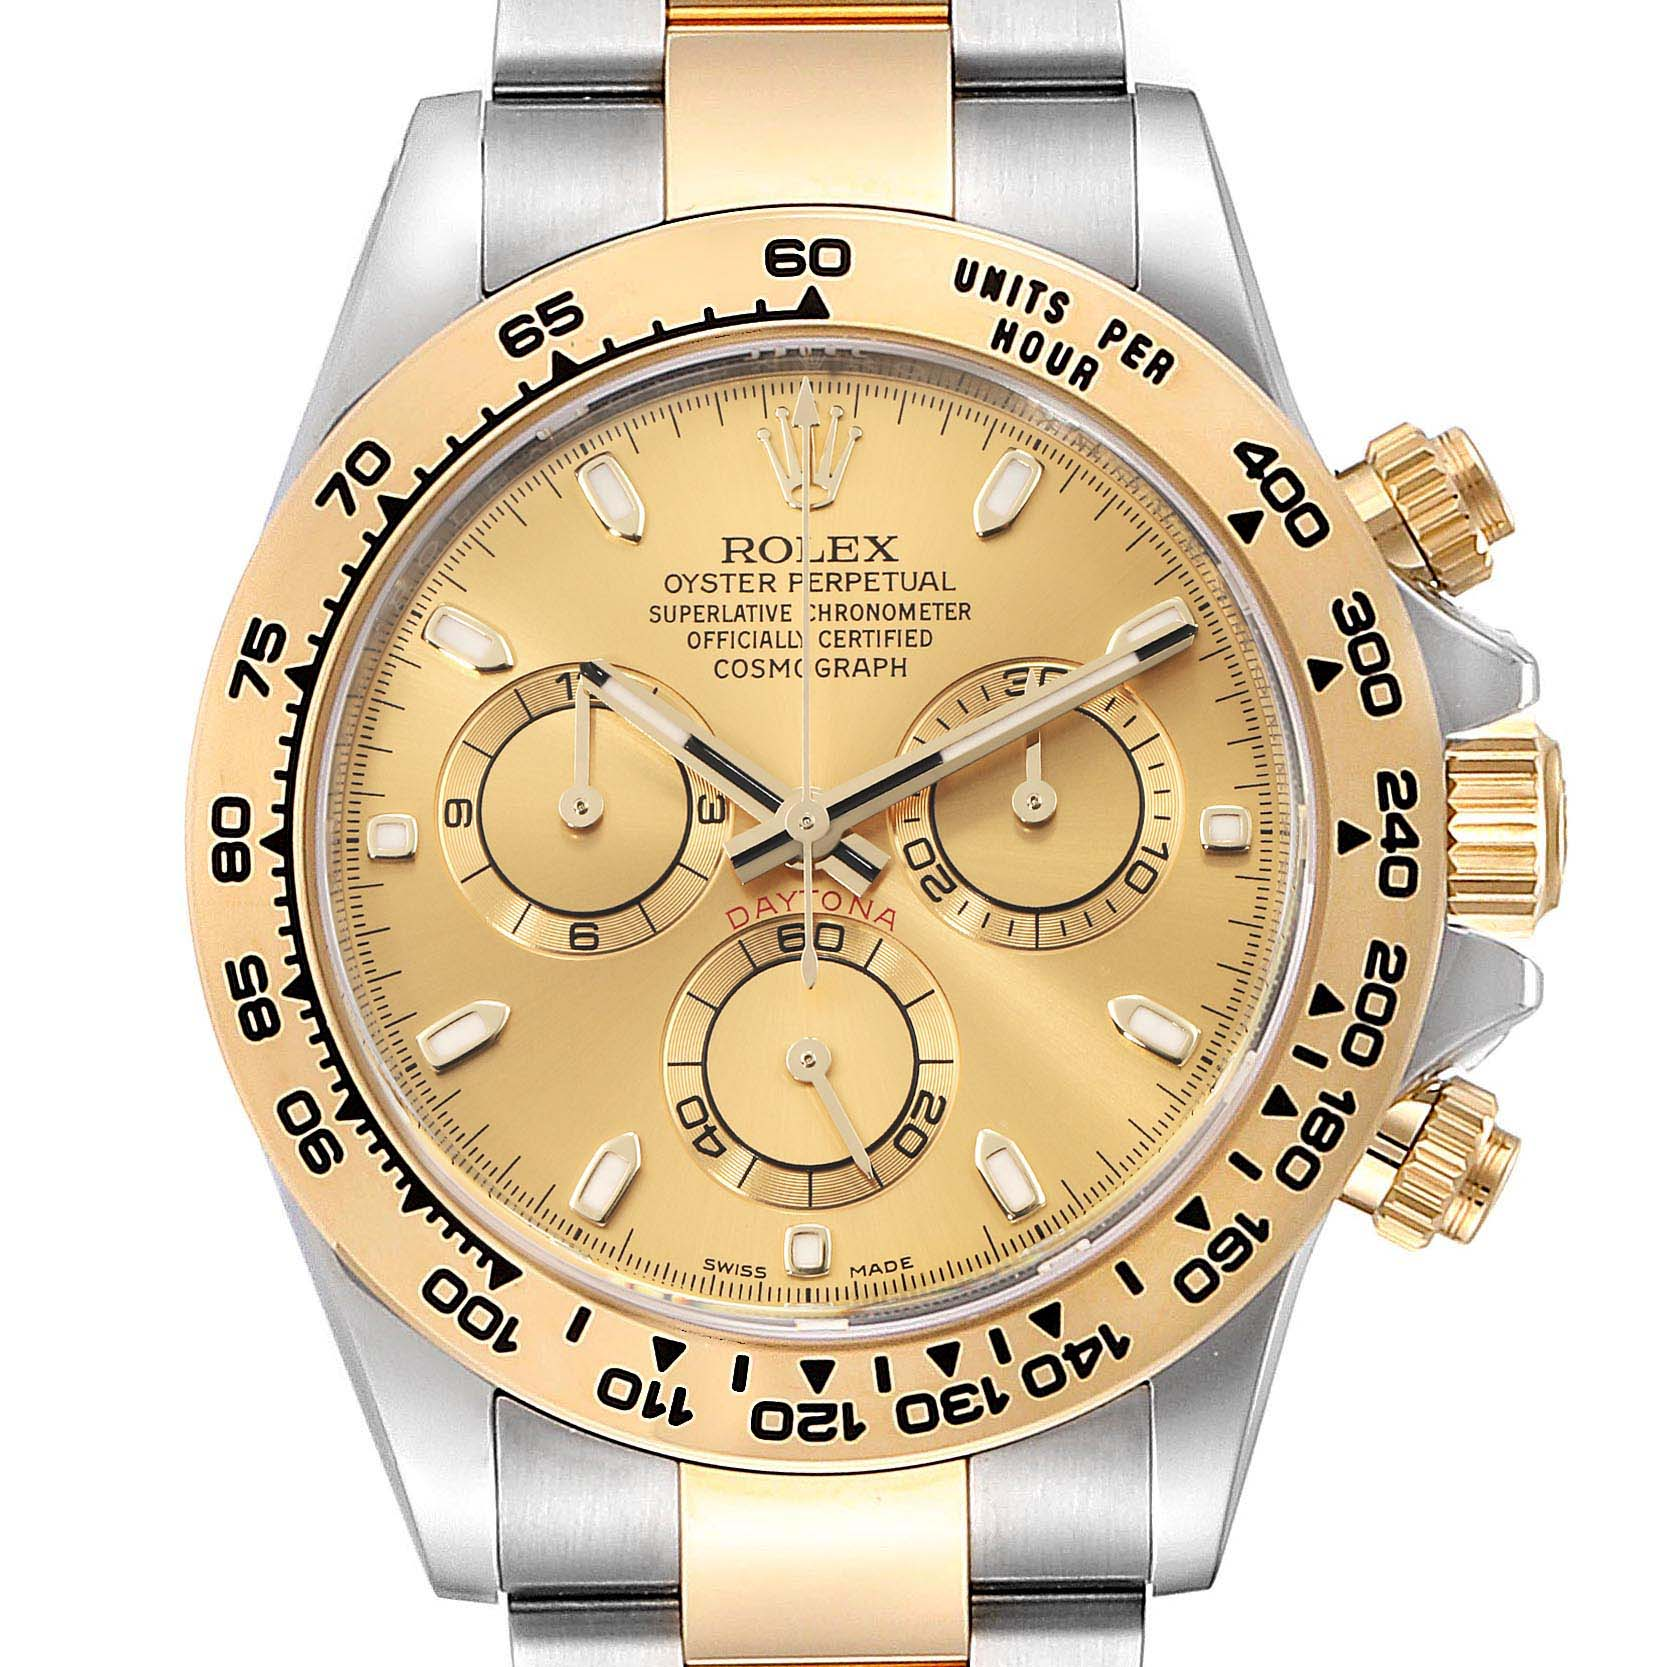 Photo of Rolex Cosmograph Daytona Steel Yellow Gold Mens Watch 116503 Box Card